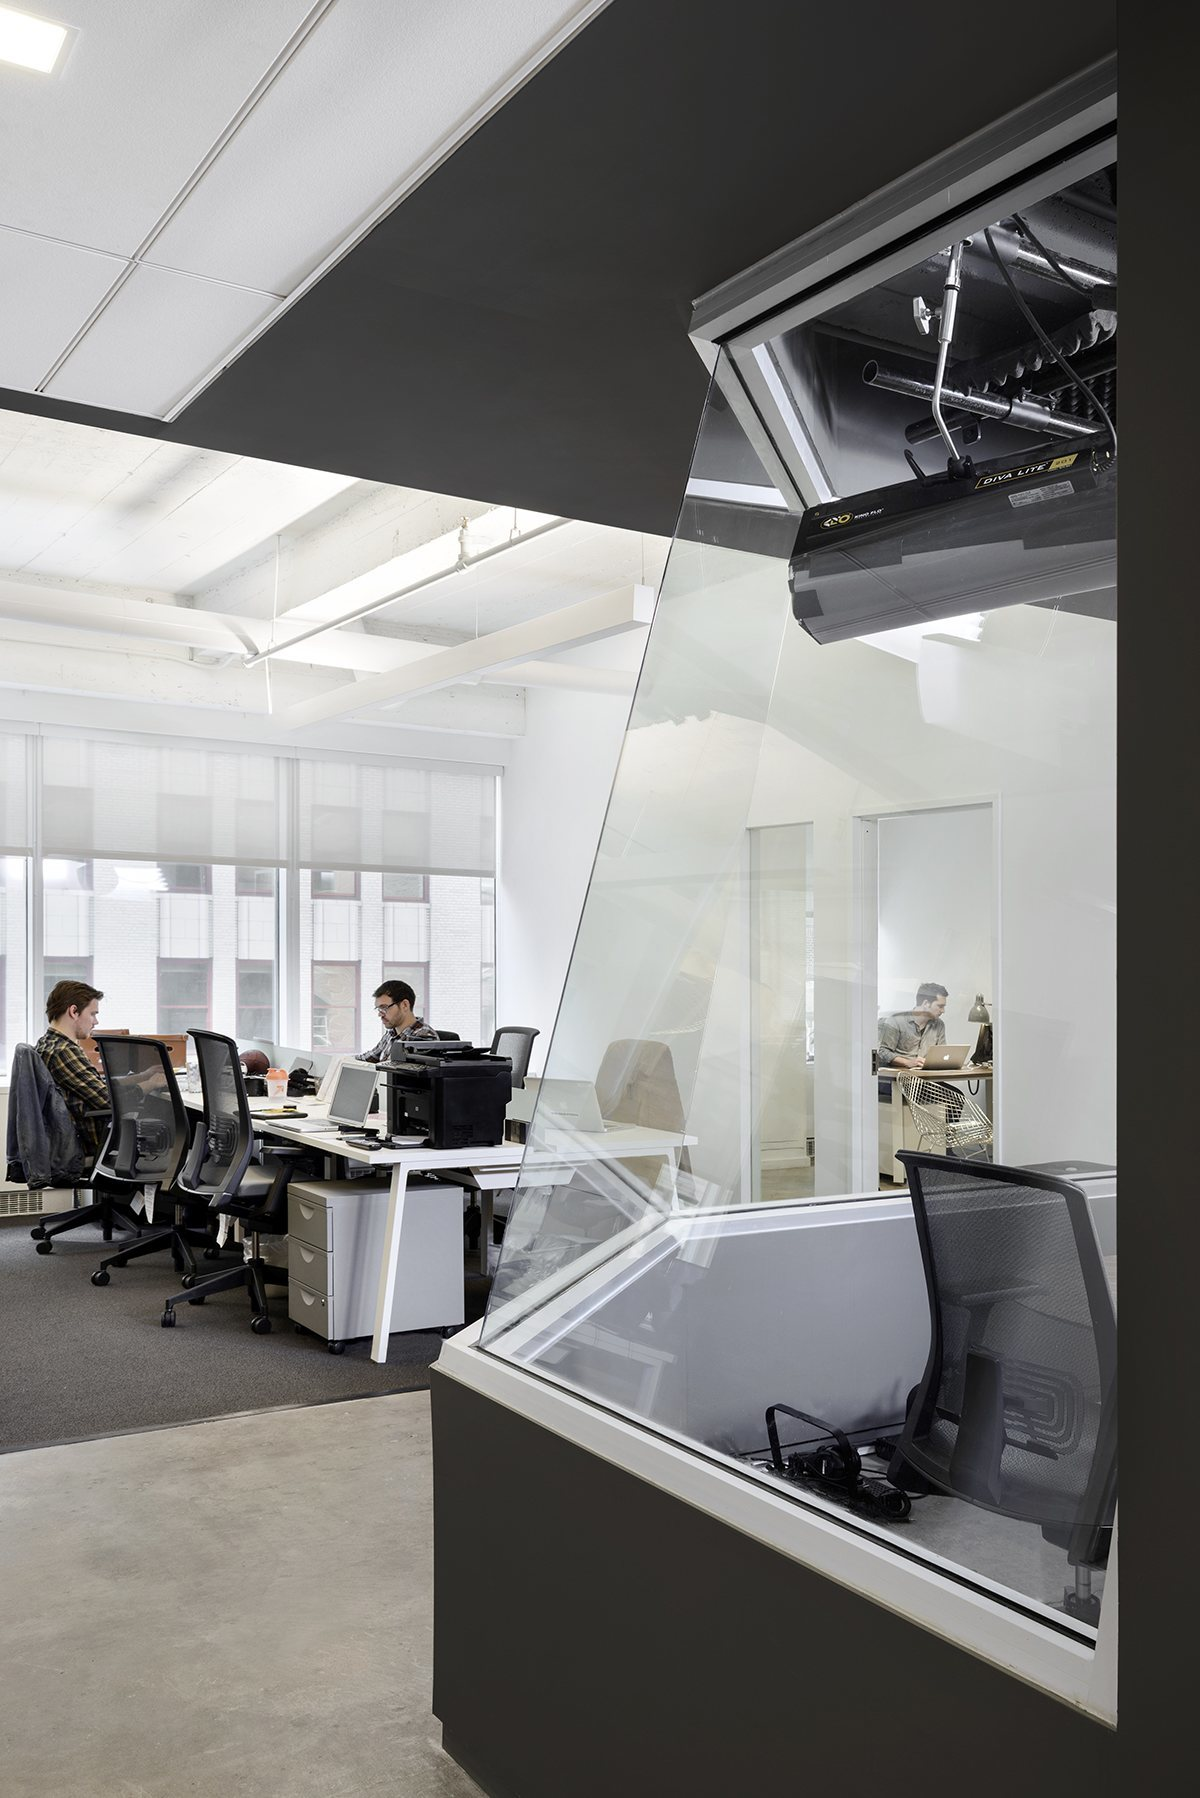 vox-media-nyc-office-3